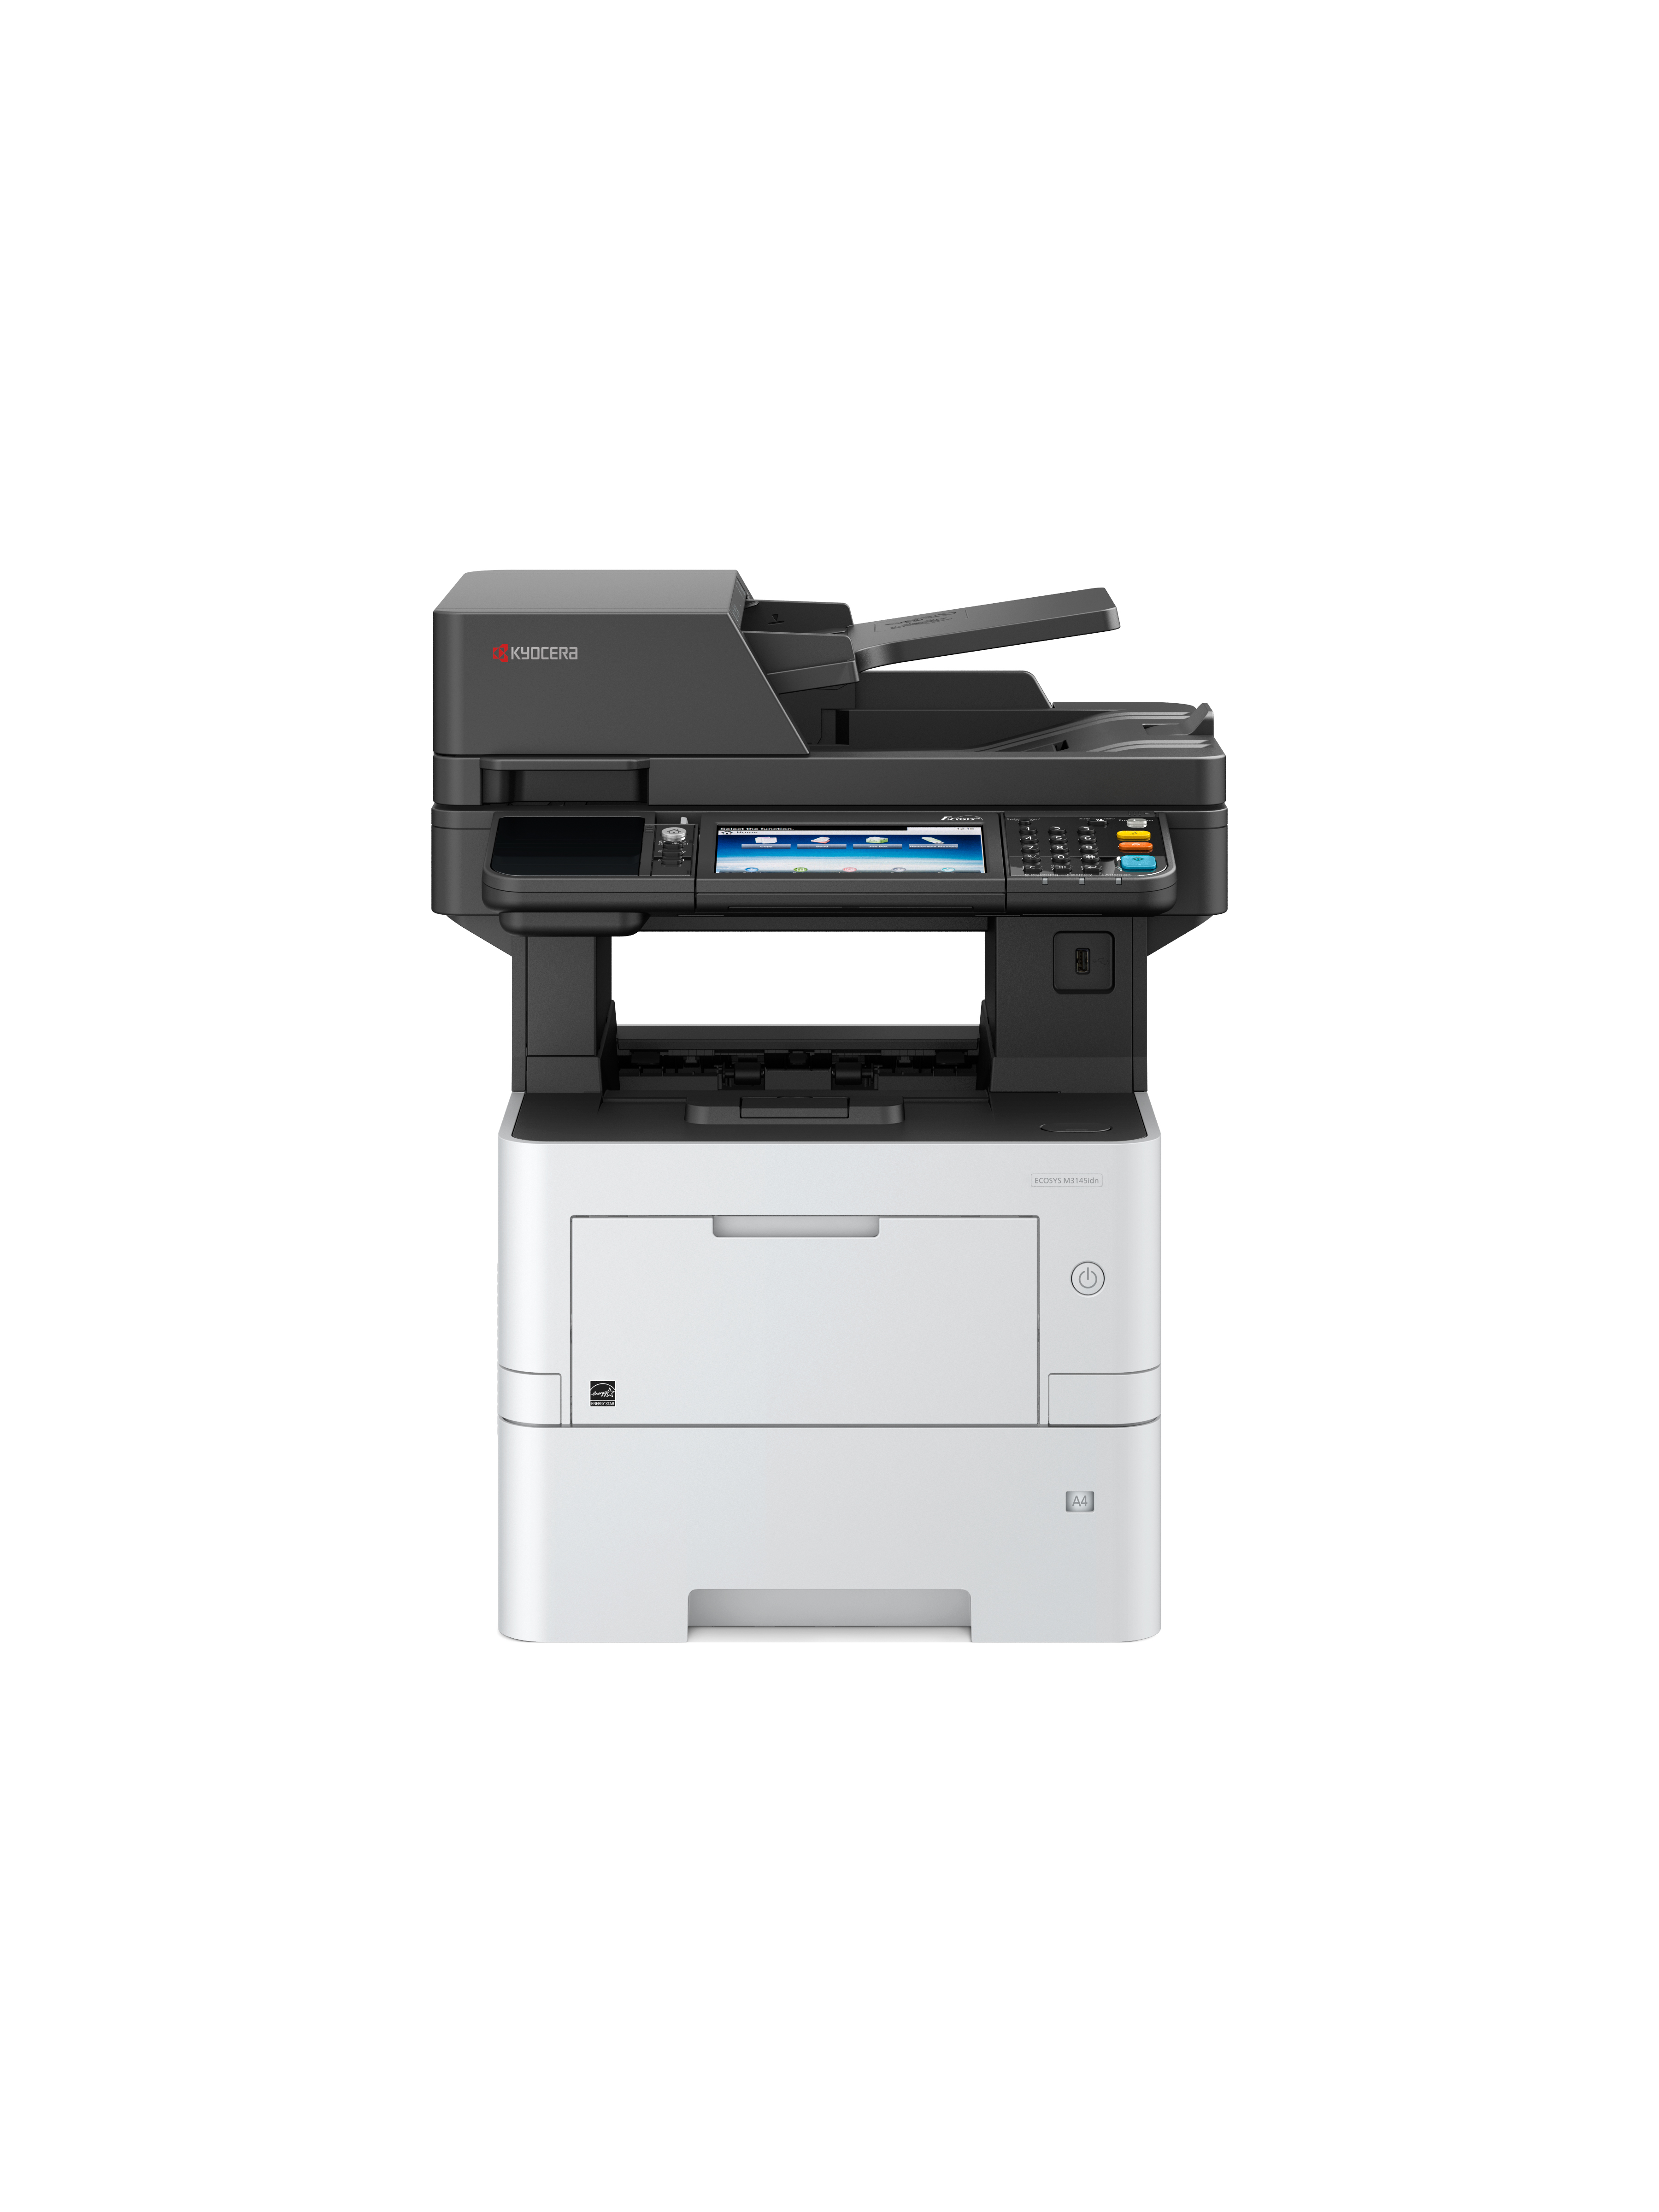 Office Equipment Copier Printer Multifunctional Printer And